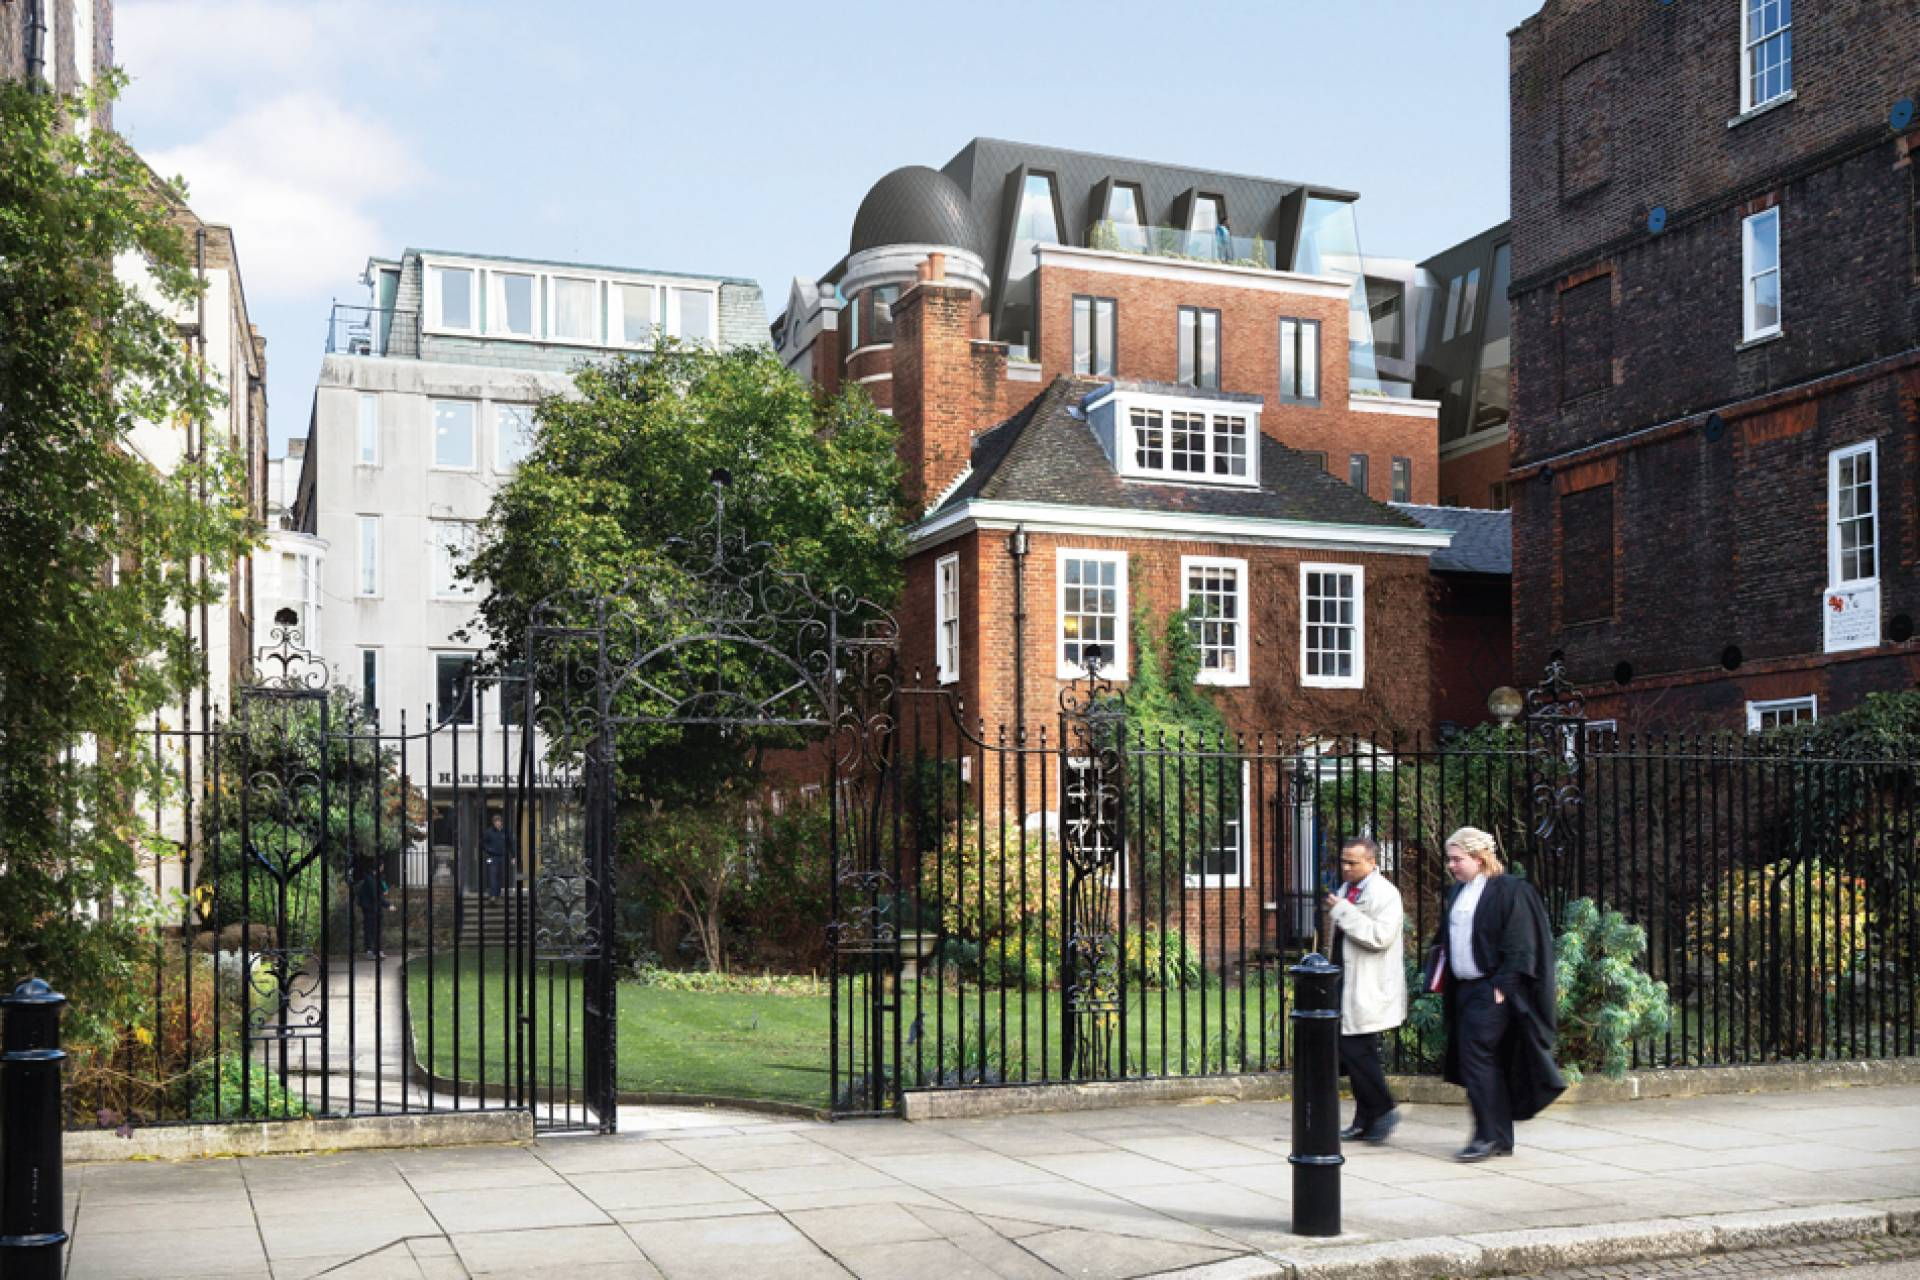 81 Chancery Lane behind gate